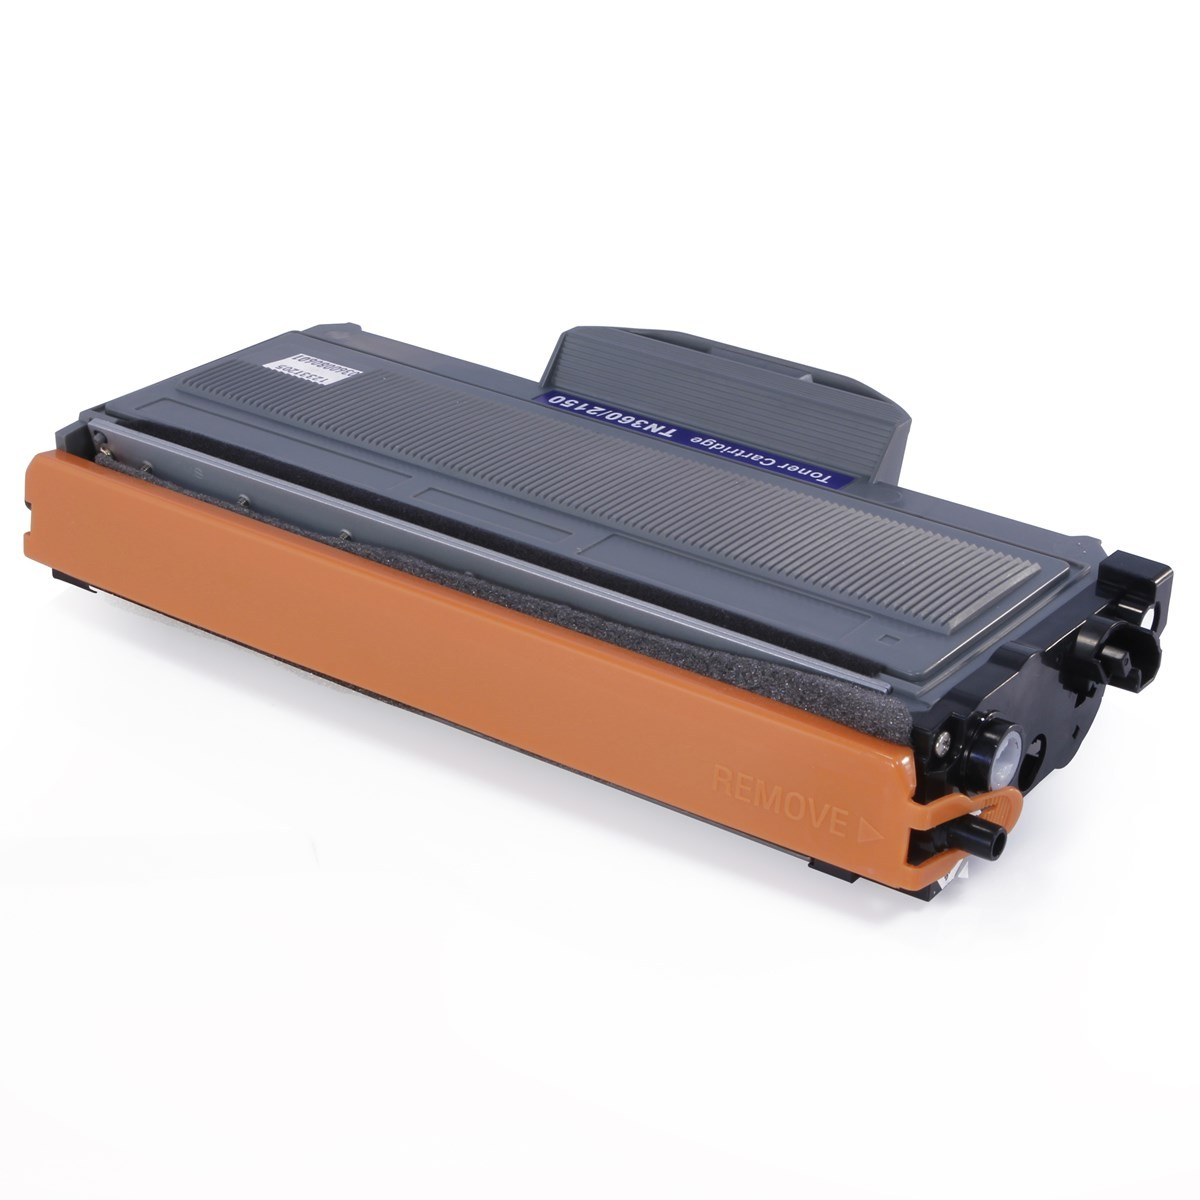 Toner Compatível Brother TN330 / TN360 para Brother DCP7030 DCP7040 HL2140 HL2150 MFC7320 MFC7840 | 2.5k